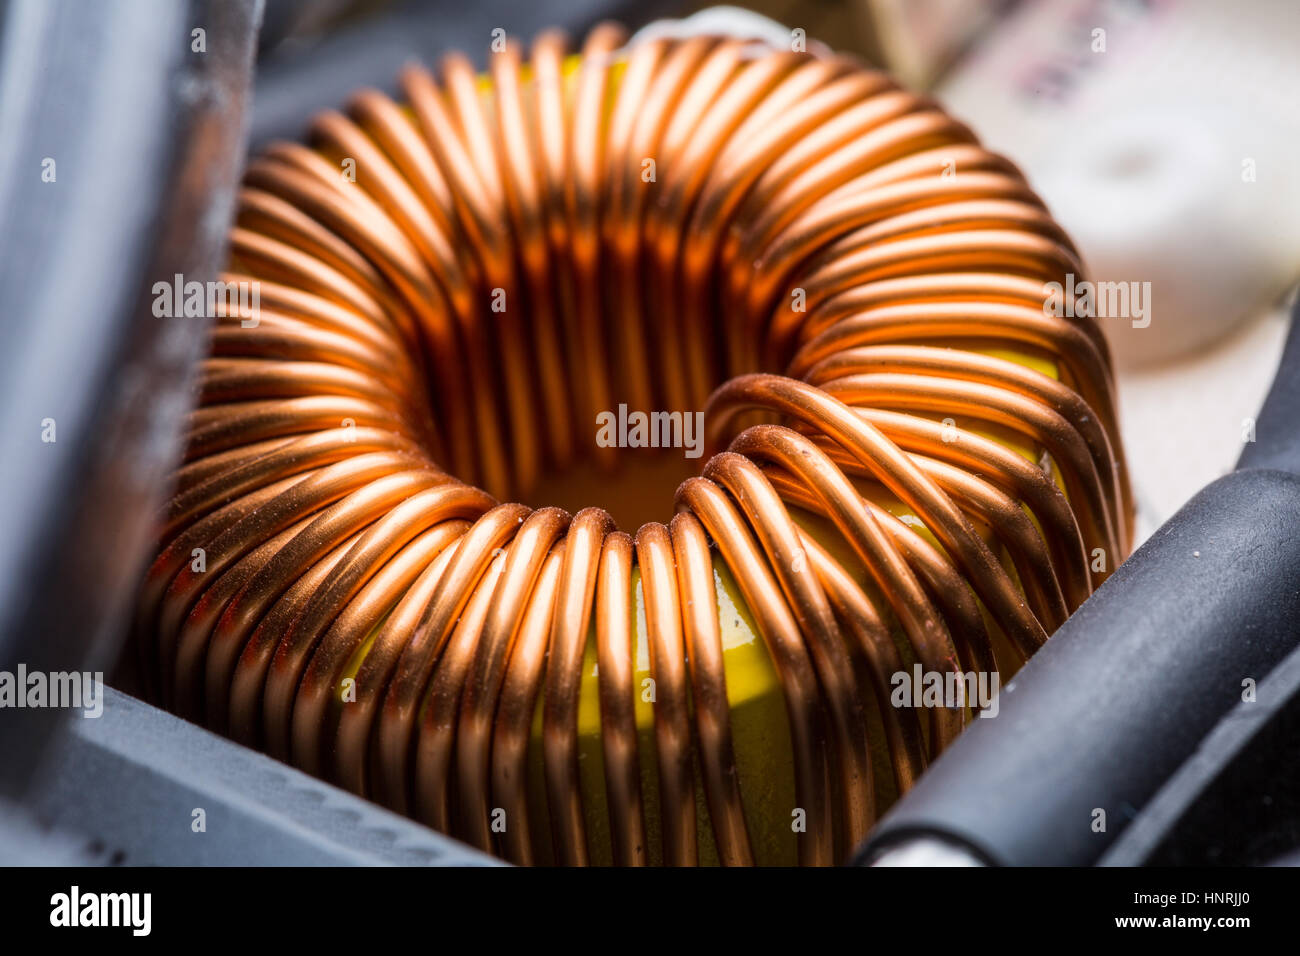 Magnet Copper Electricity Stockfotos & Magnet Copper Electricity ...